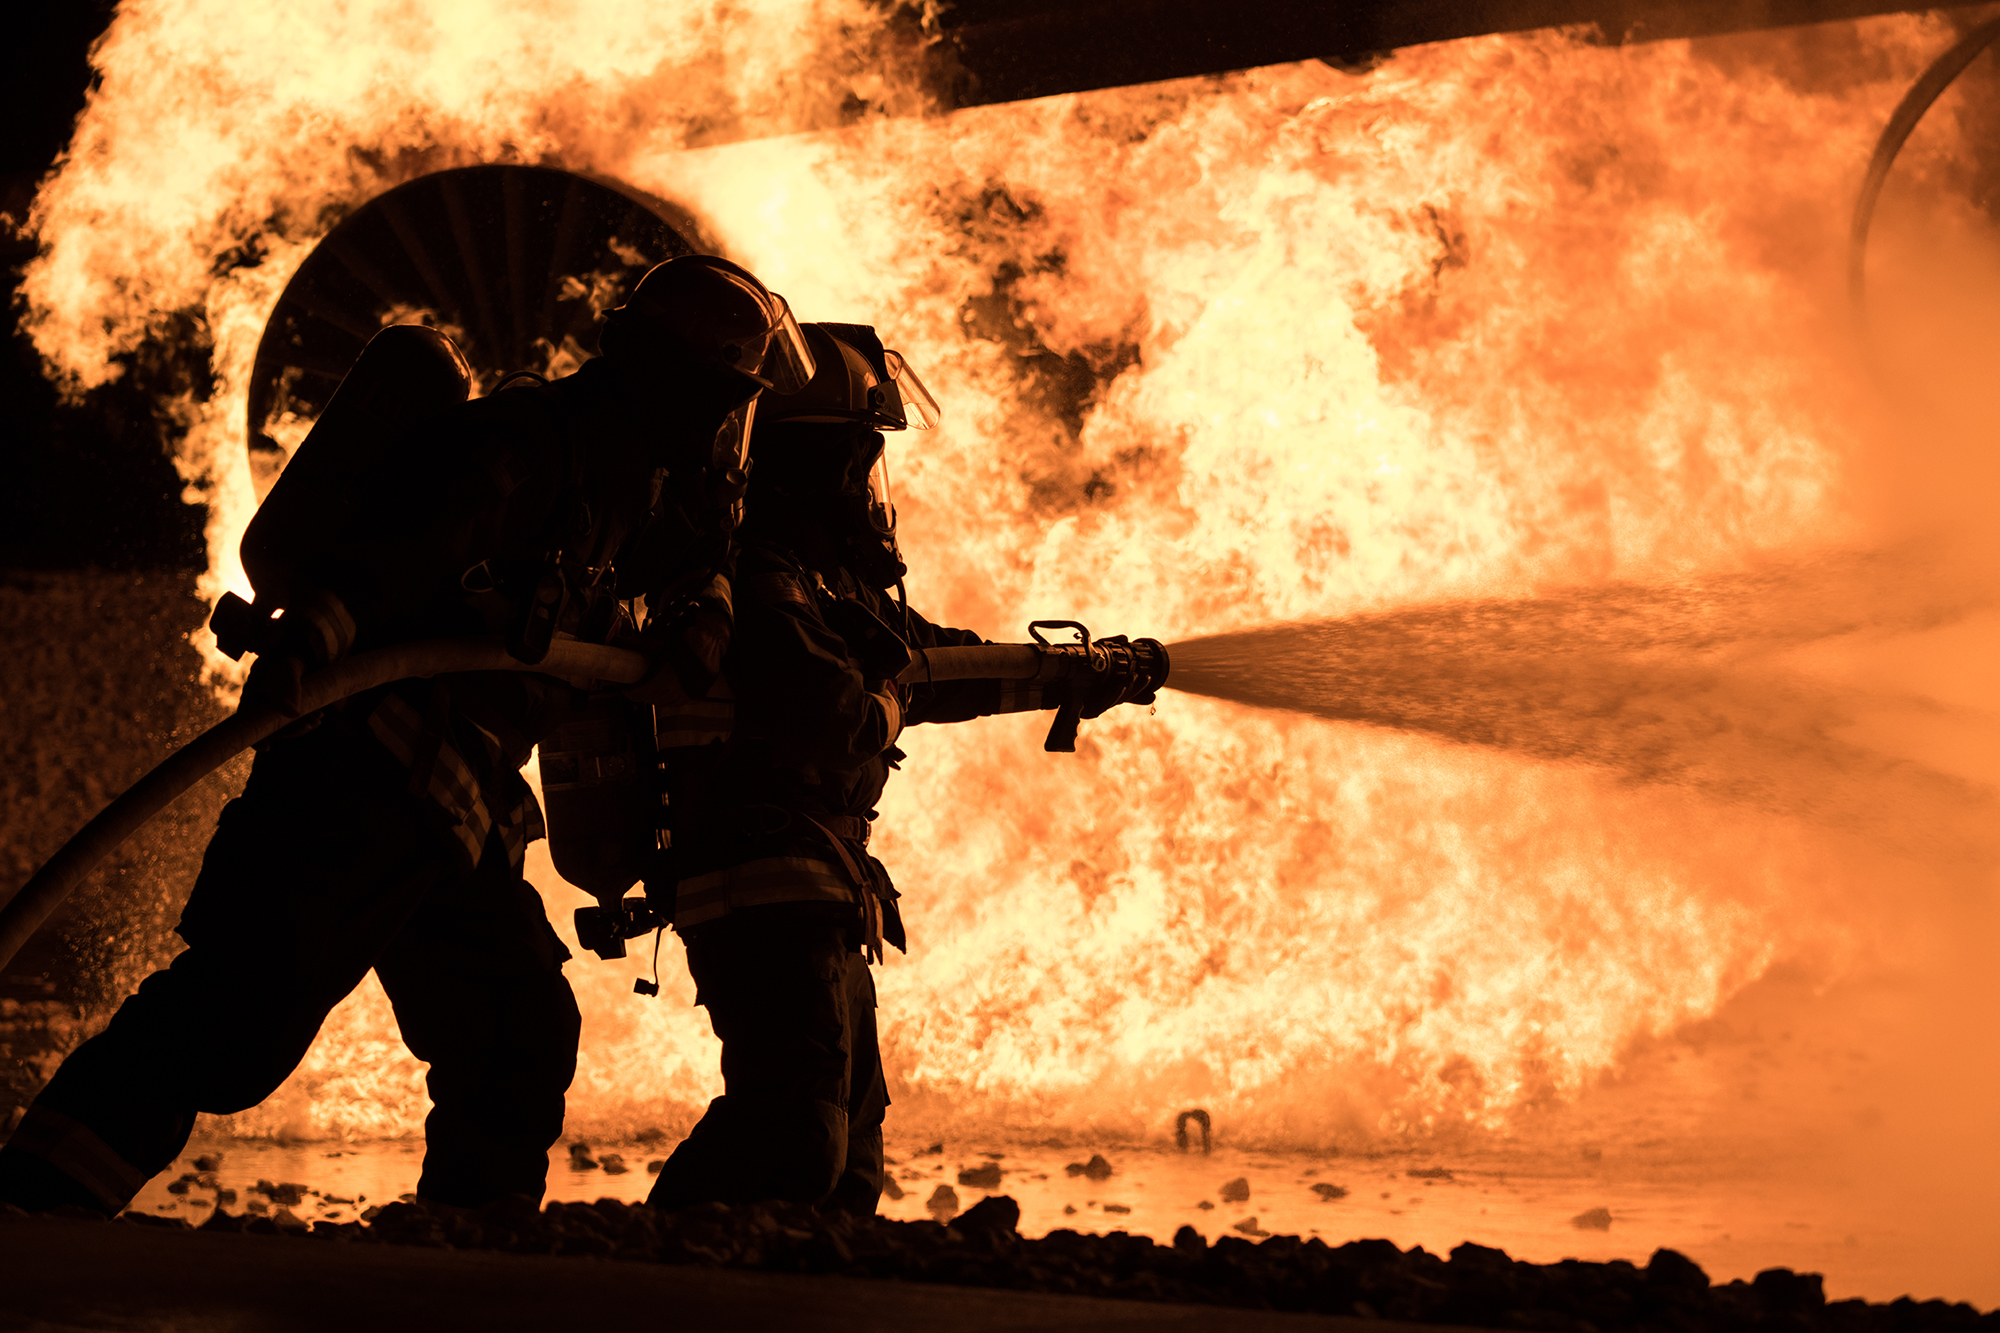 Brent Hardsaw, 22nd Civil Engineer Squadron fire inspector, and Airman 1st Class Trace James, 22nd CES fire protection apprentice, extinguish flames during an annual night aircraft burn, Sept. 18, 2020, at McConnell Air Force Base, Kan. (Senior Airman Alan Ricker/Air Force)